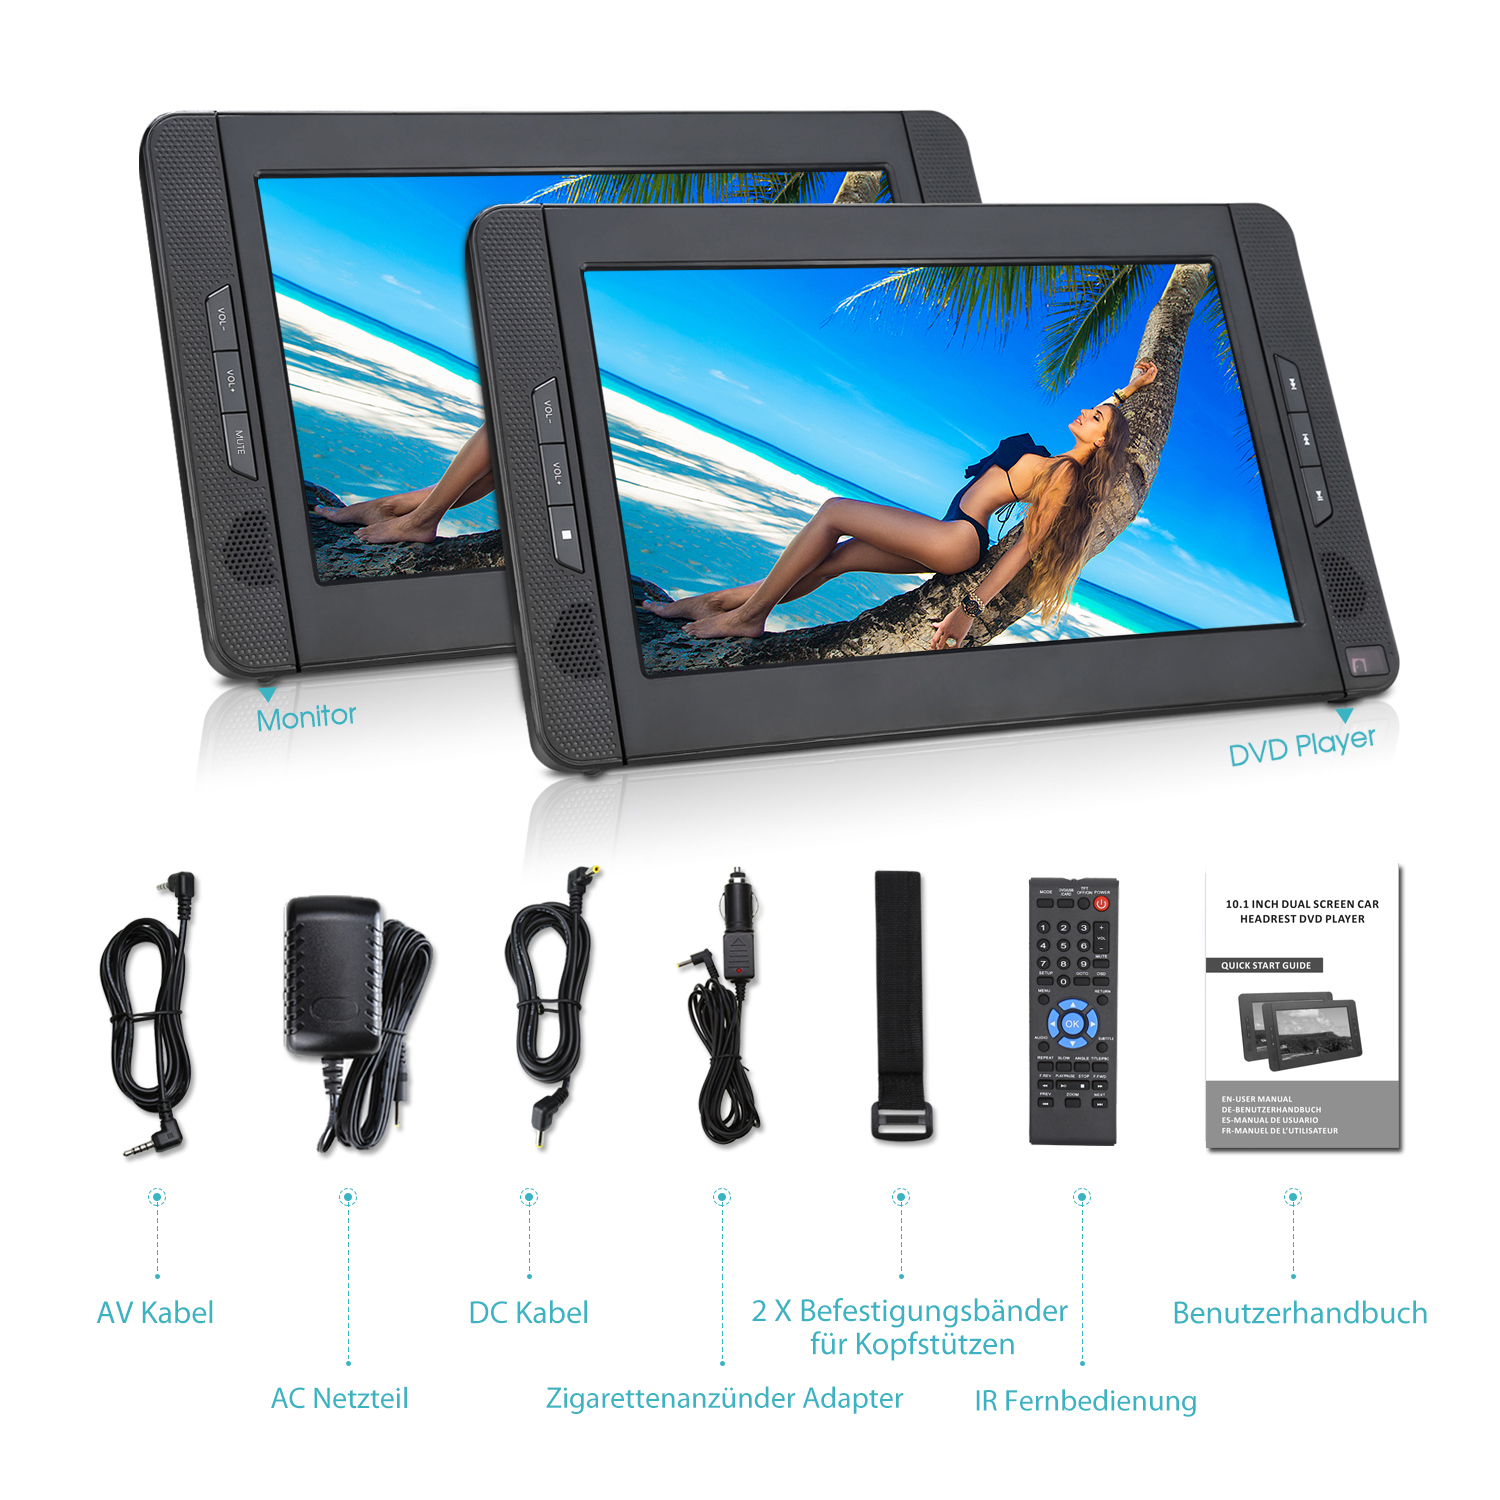 10 zoll 2 monitore tragbarer dvd player kopfst tze auto. Black Bedroom Furniture Sets. Home Design Ideas